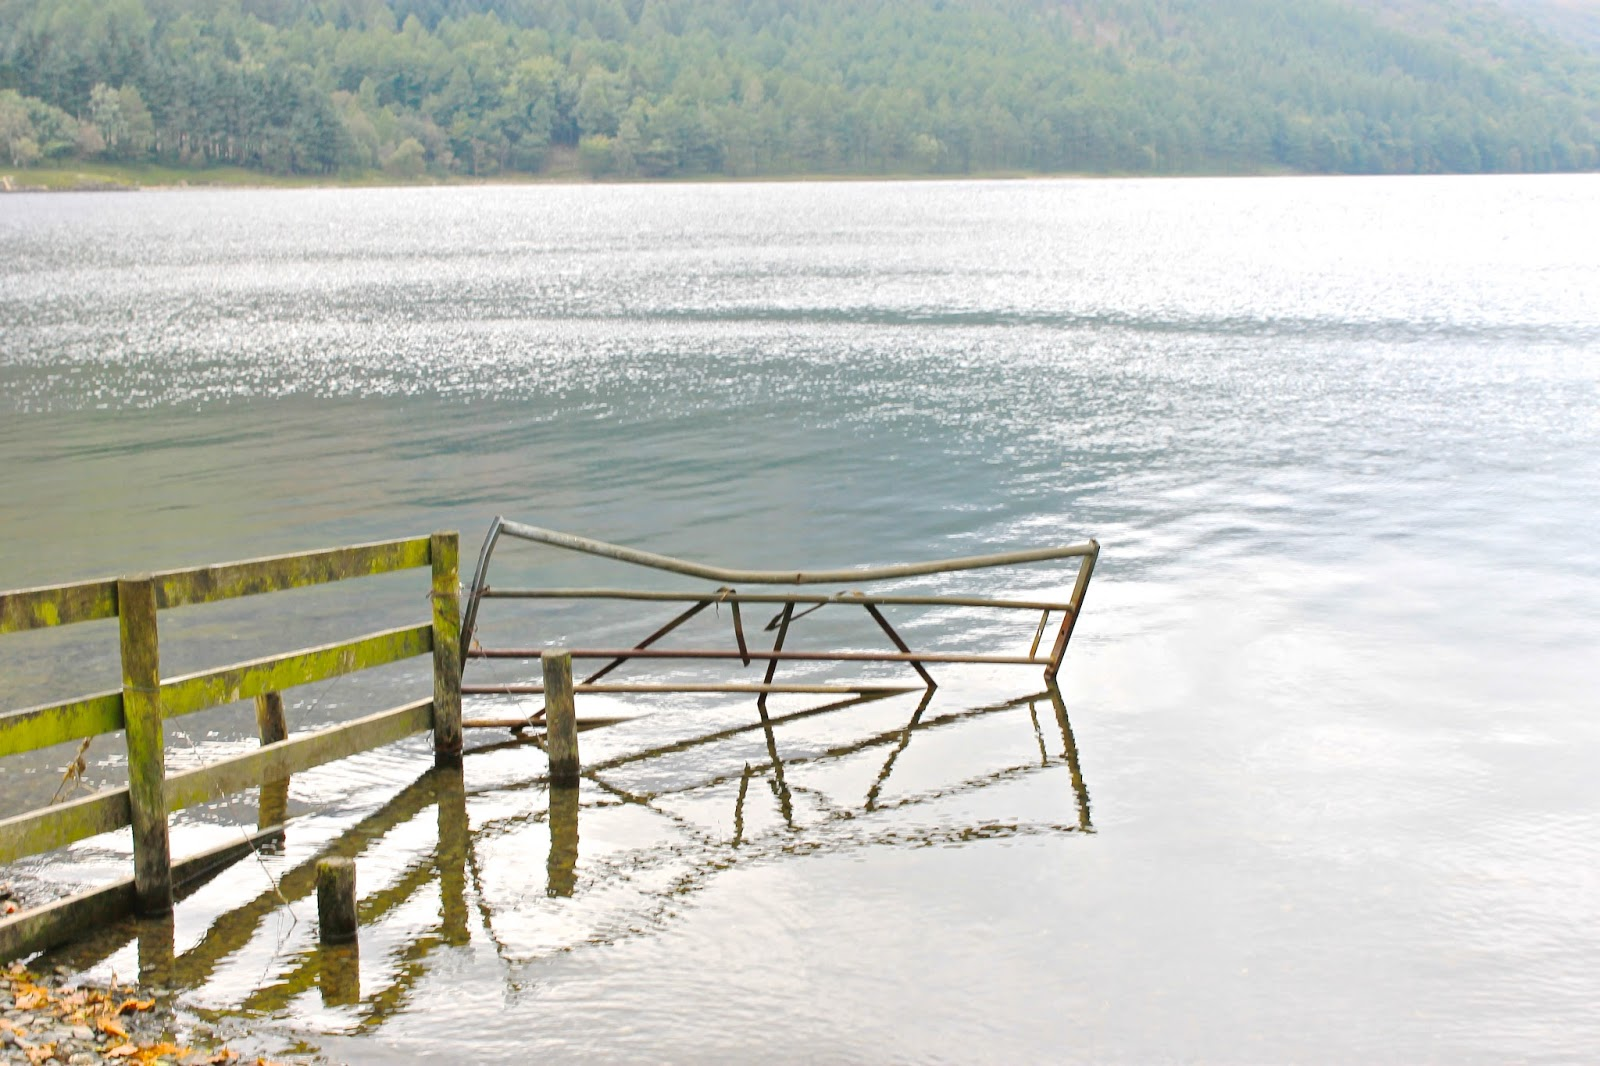 The lake district, lake district, family first holiday, peace, stunning views, windermere, buttermere lake,